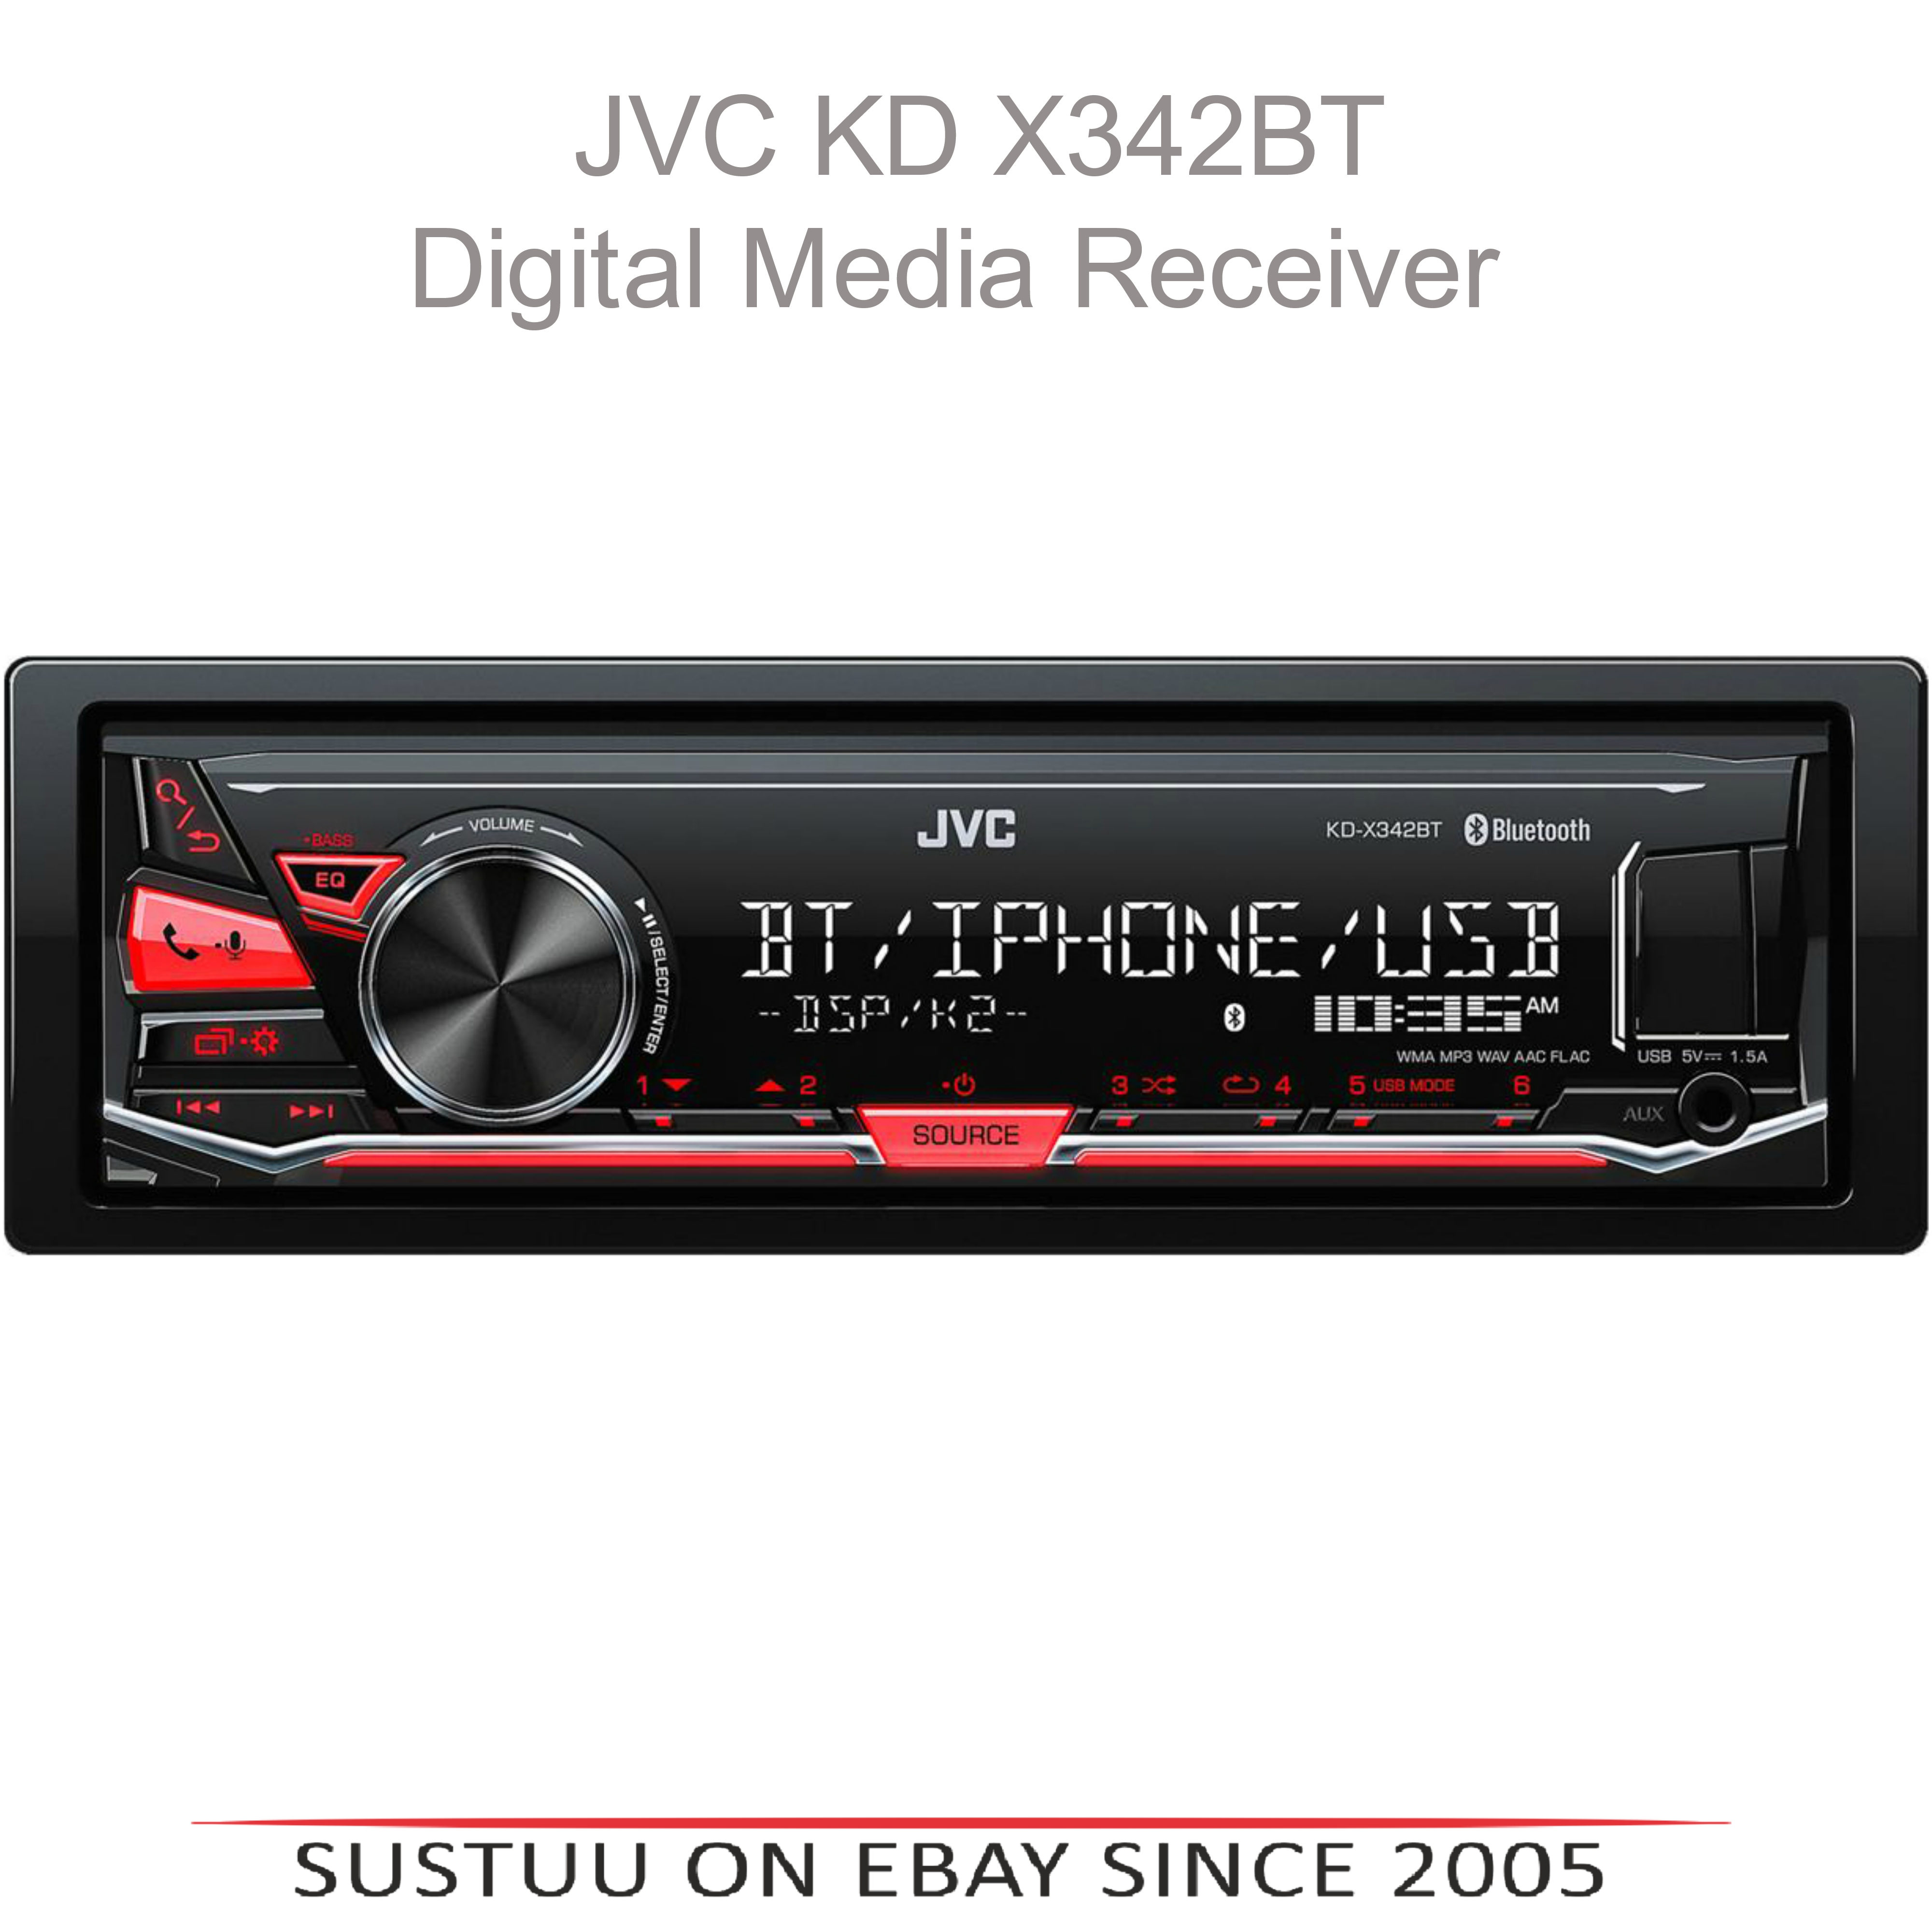 JVC KD X342BT Bluetooth/Aux/Usb/iphone/Android Red Display Mechless Car Stereo